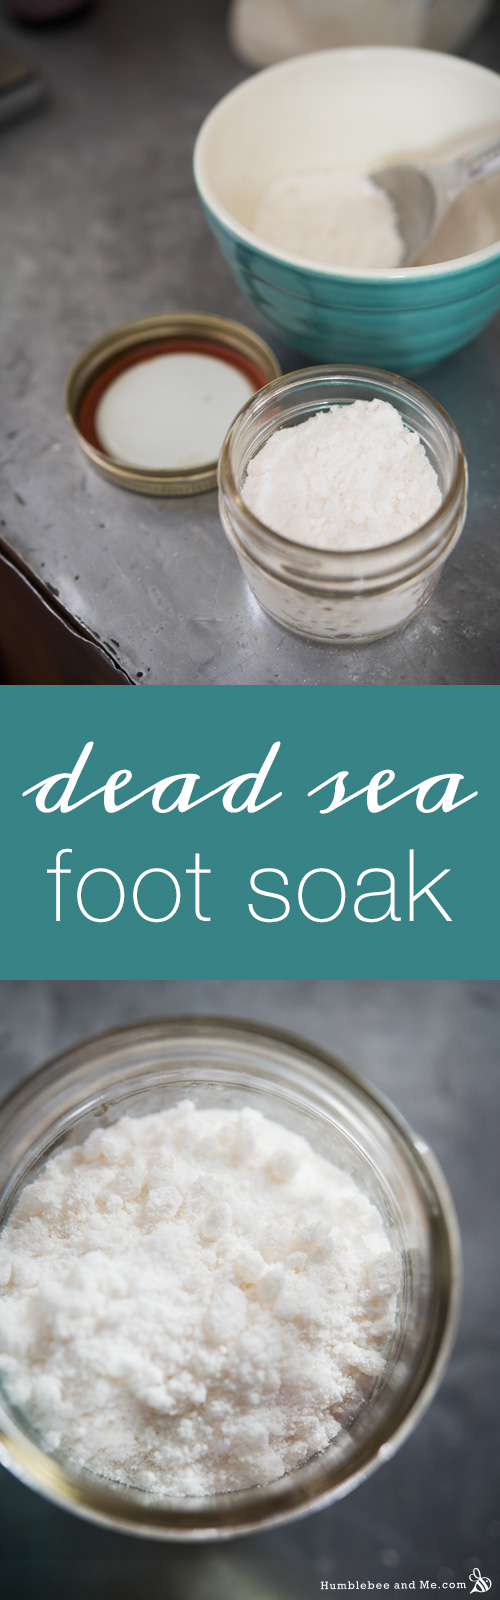 How to make a Dead Sea Foot Soak